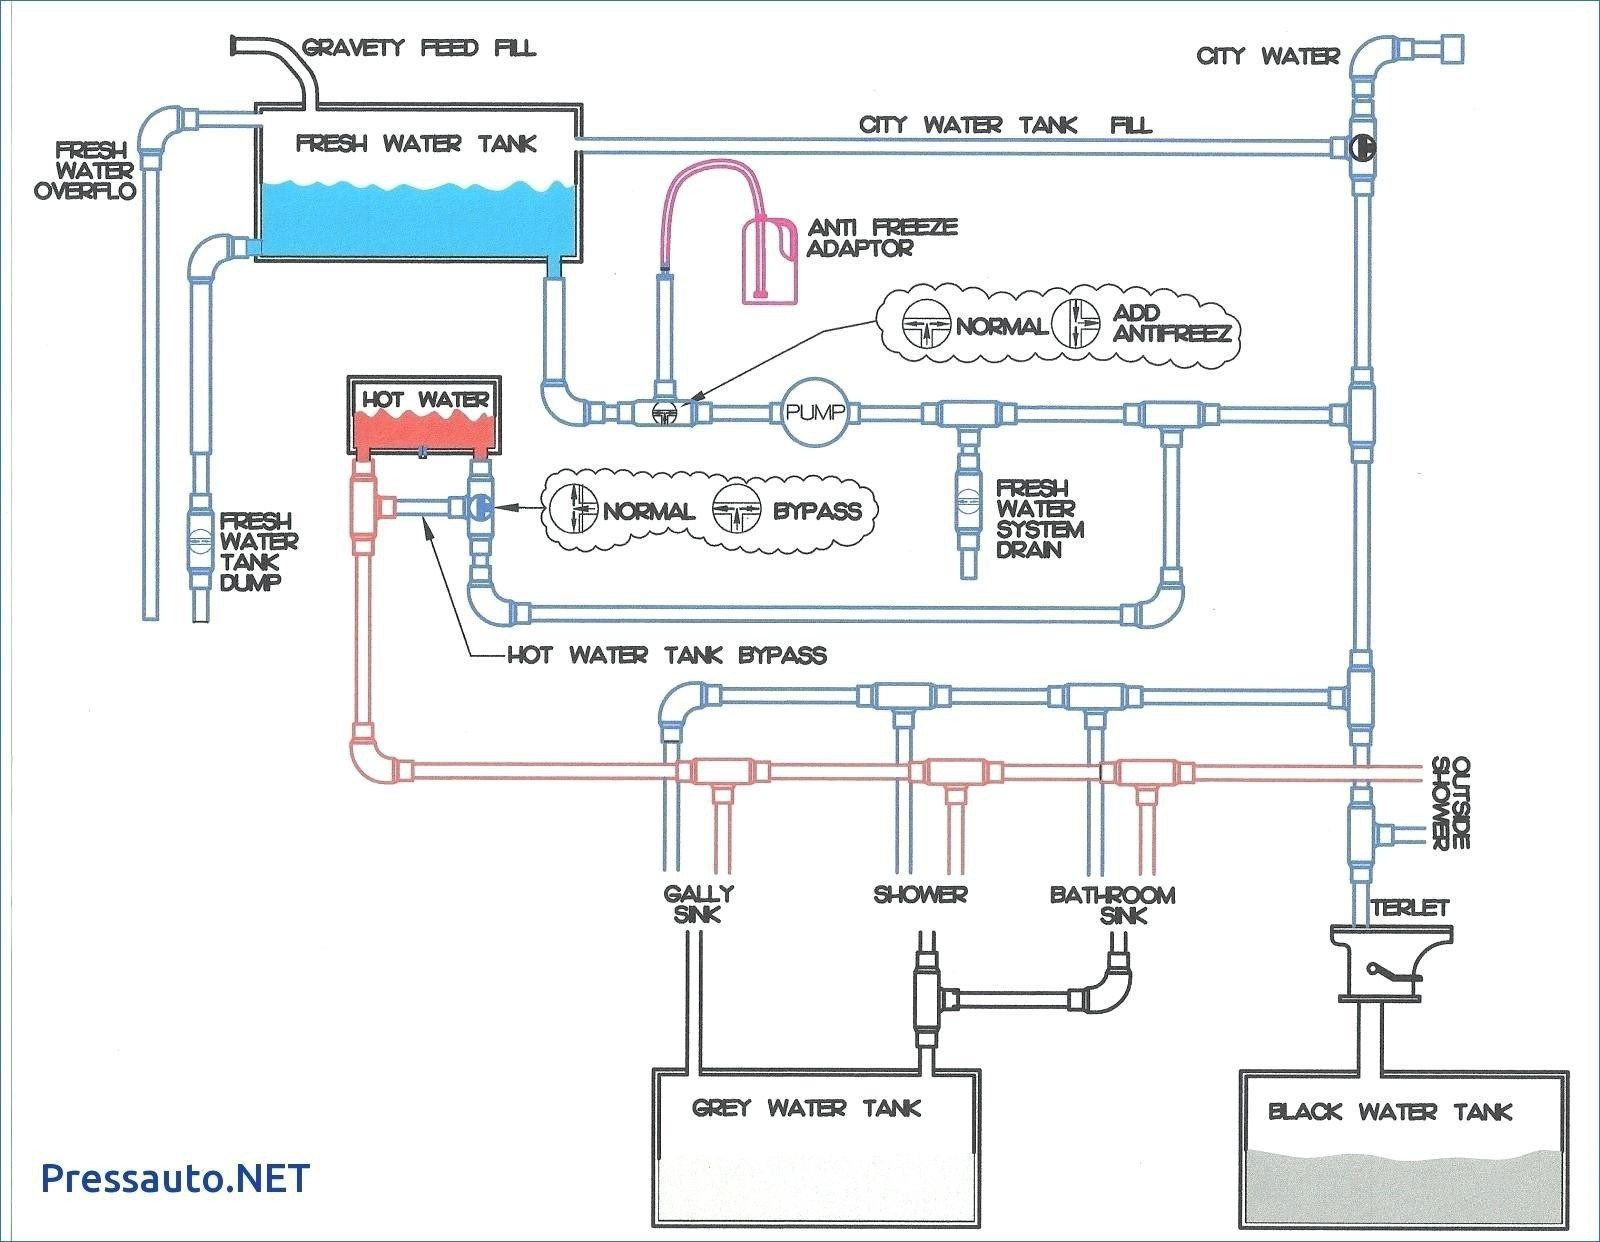 small resolution of jayco hot water heater wiring diagram wiring diagram review jayco wiring diagram caravan wiring diagram teardrop